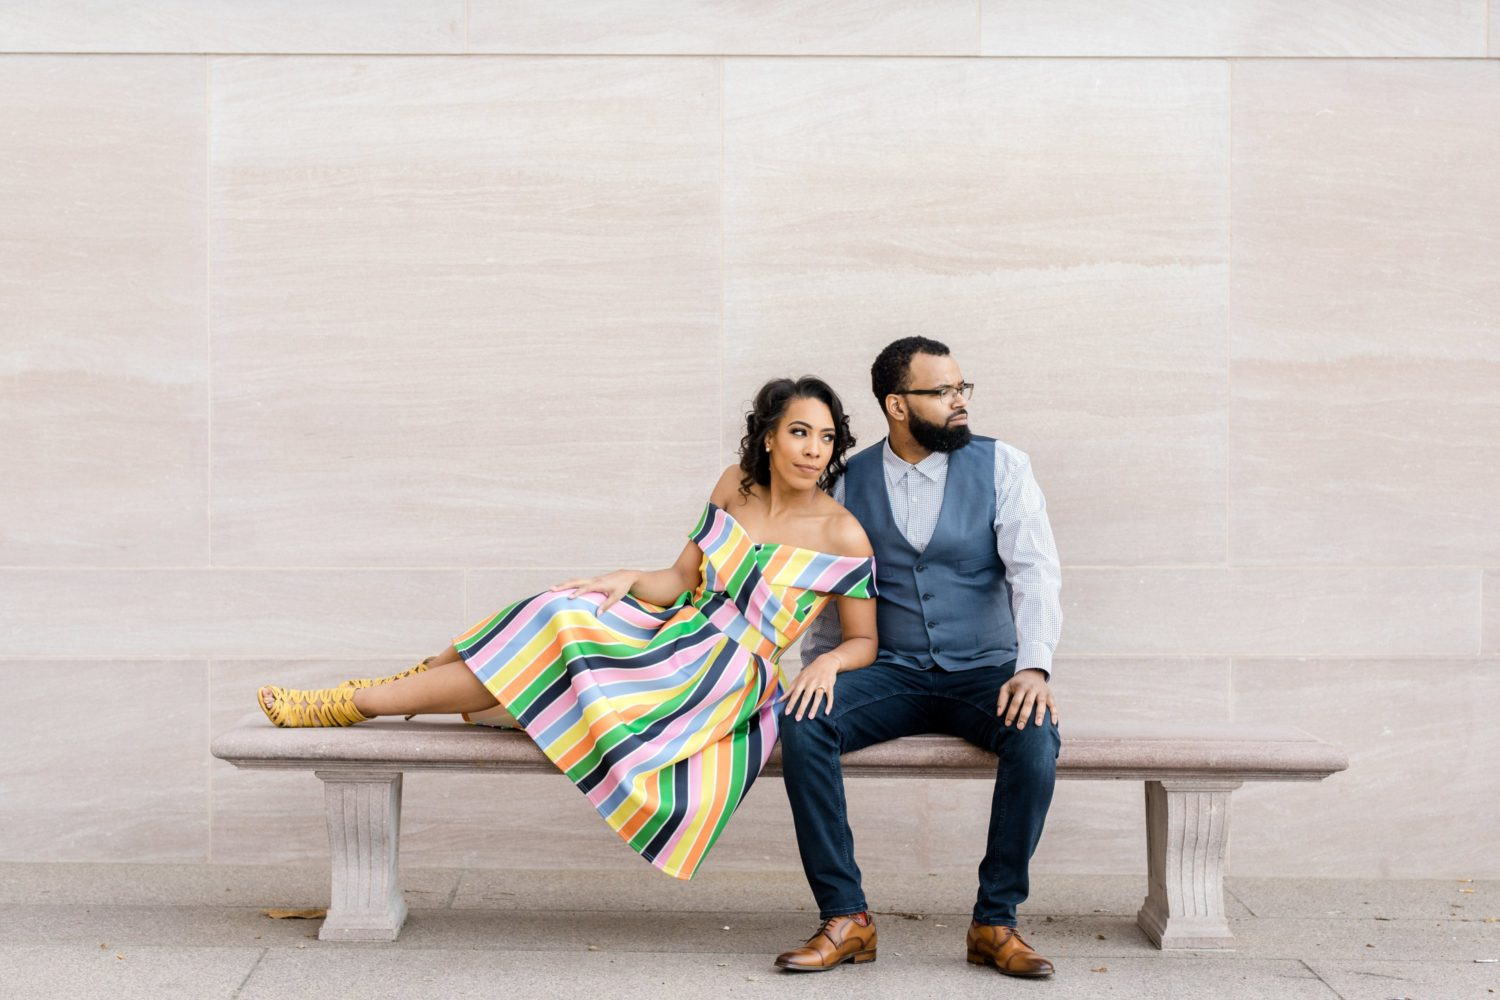 The Amazing Rainbow Dress in this National Gallery of Art Engagement Shoot will Brighten Up Your Rainy Day